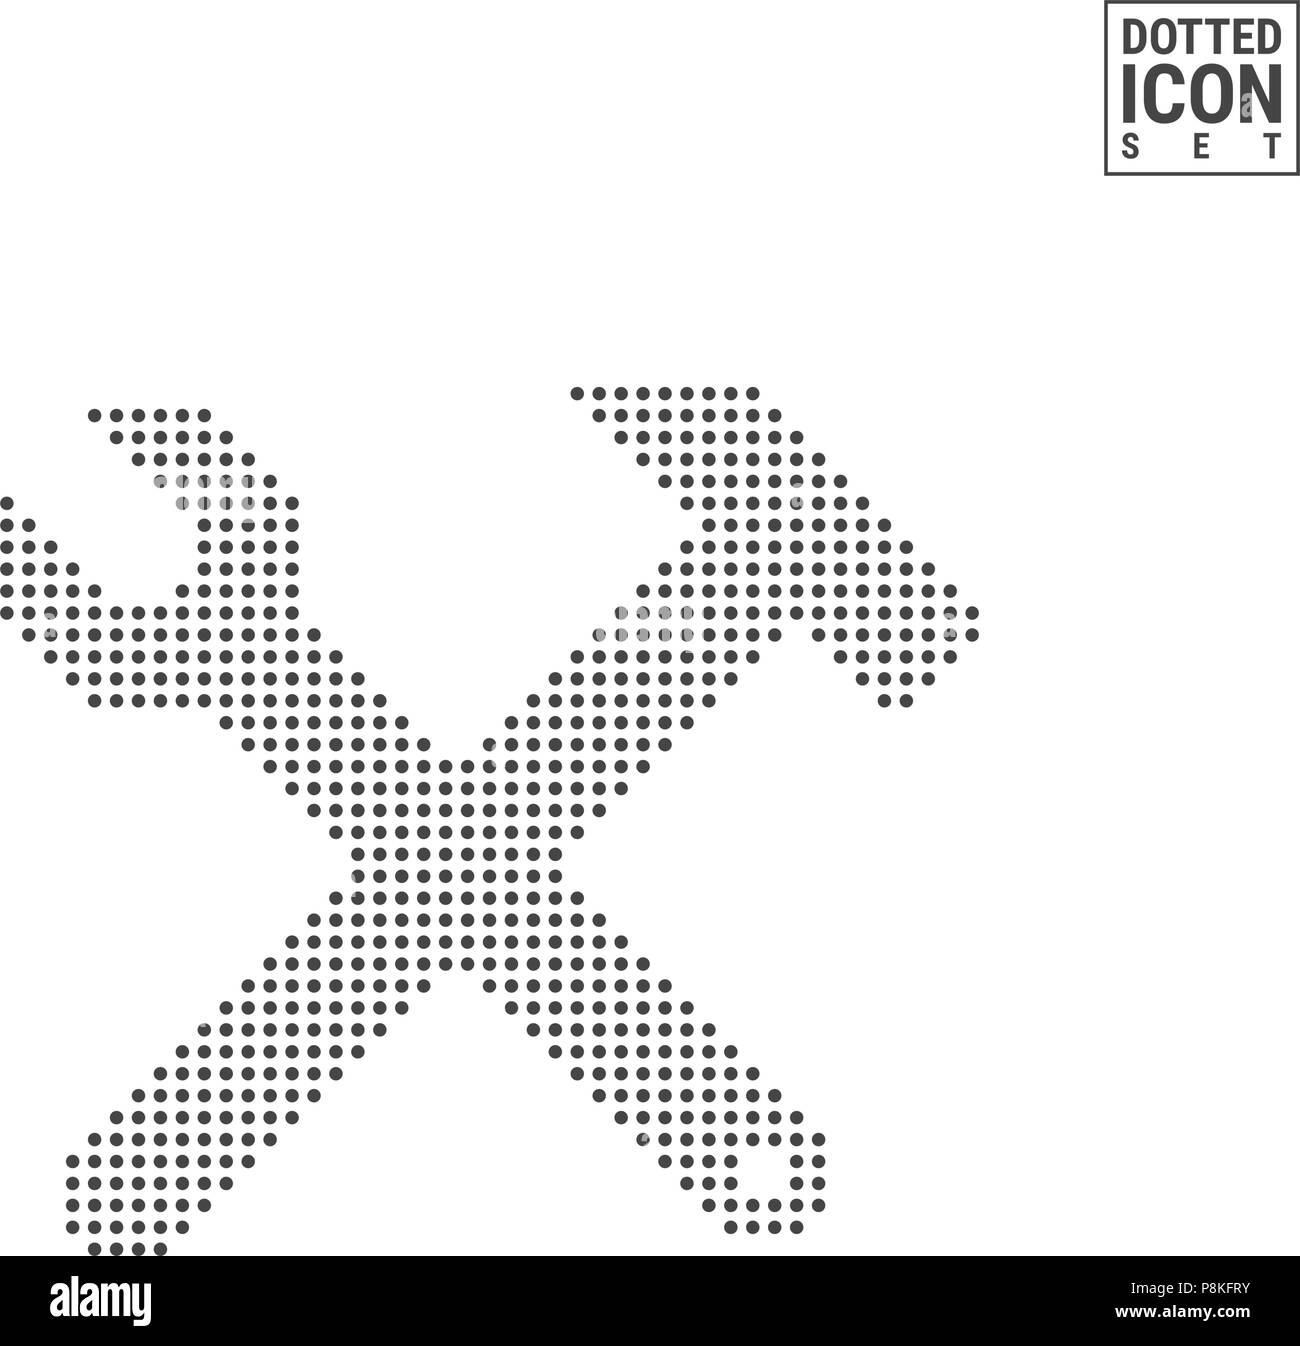 Hammer and Wrench Dot Pattern Icon. Hammer and Wrench Dotted Icon Isolated on White. Vector Icon of Construction Stock Vector